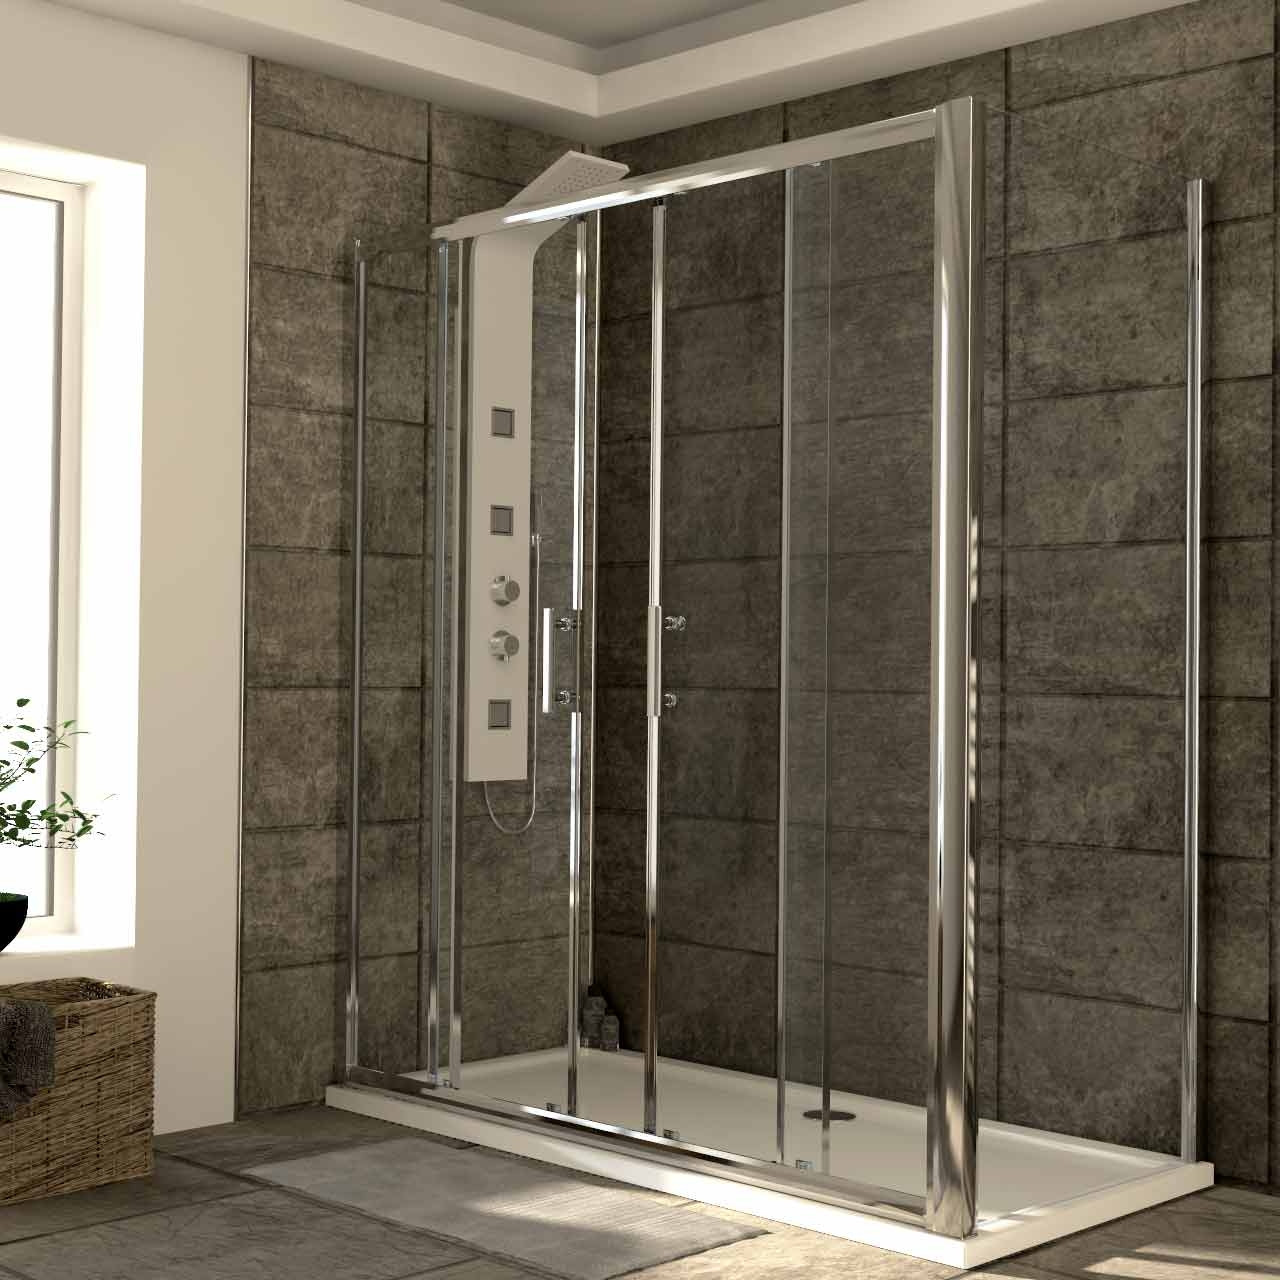 Series 6 1700mm x 800mm Double Sliding Door Shower Enclosure